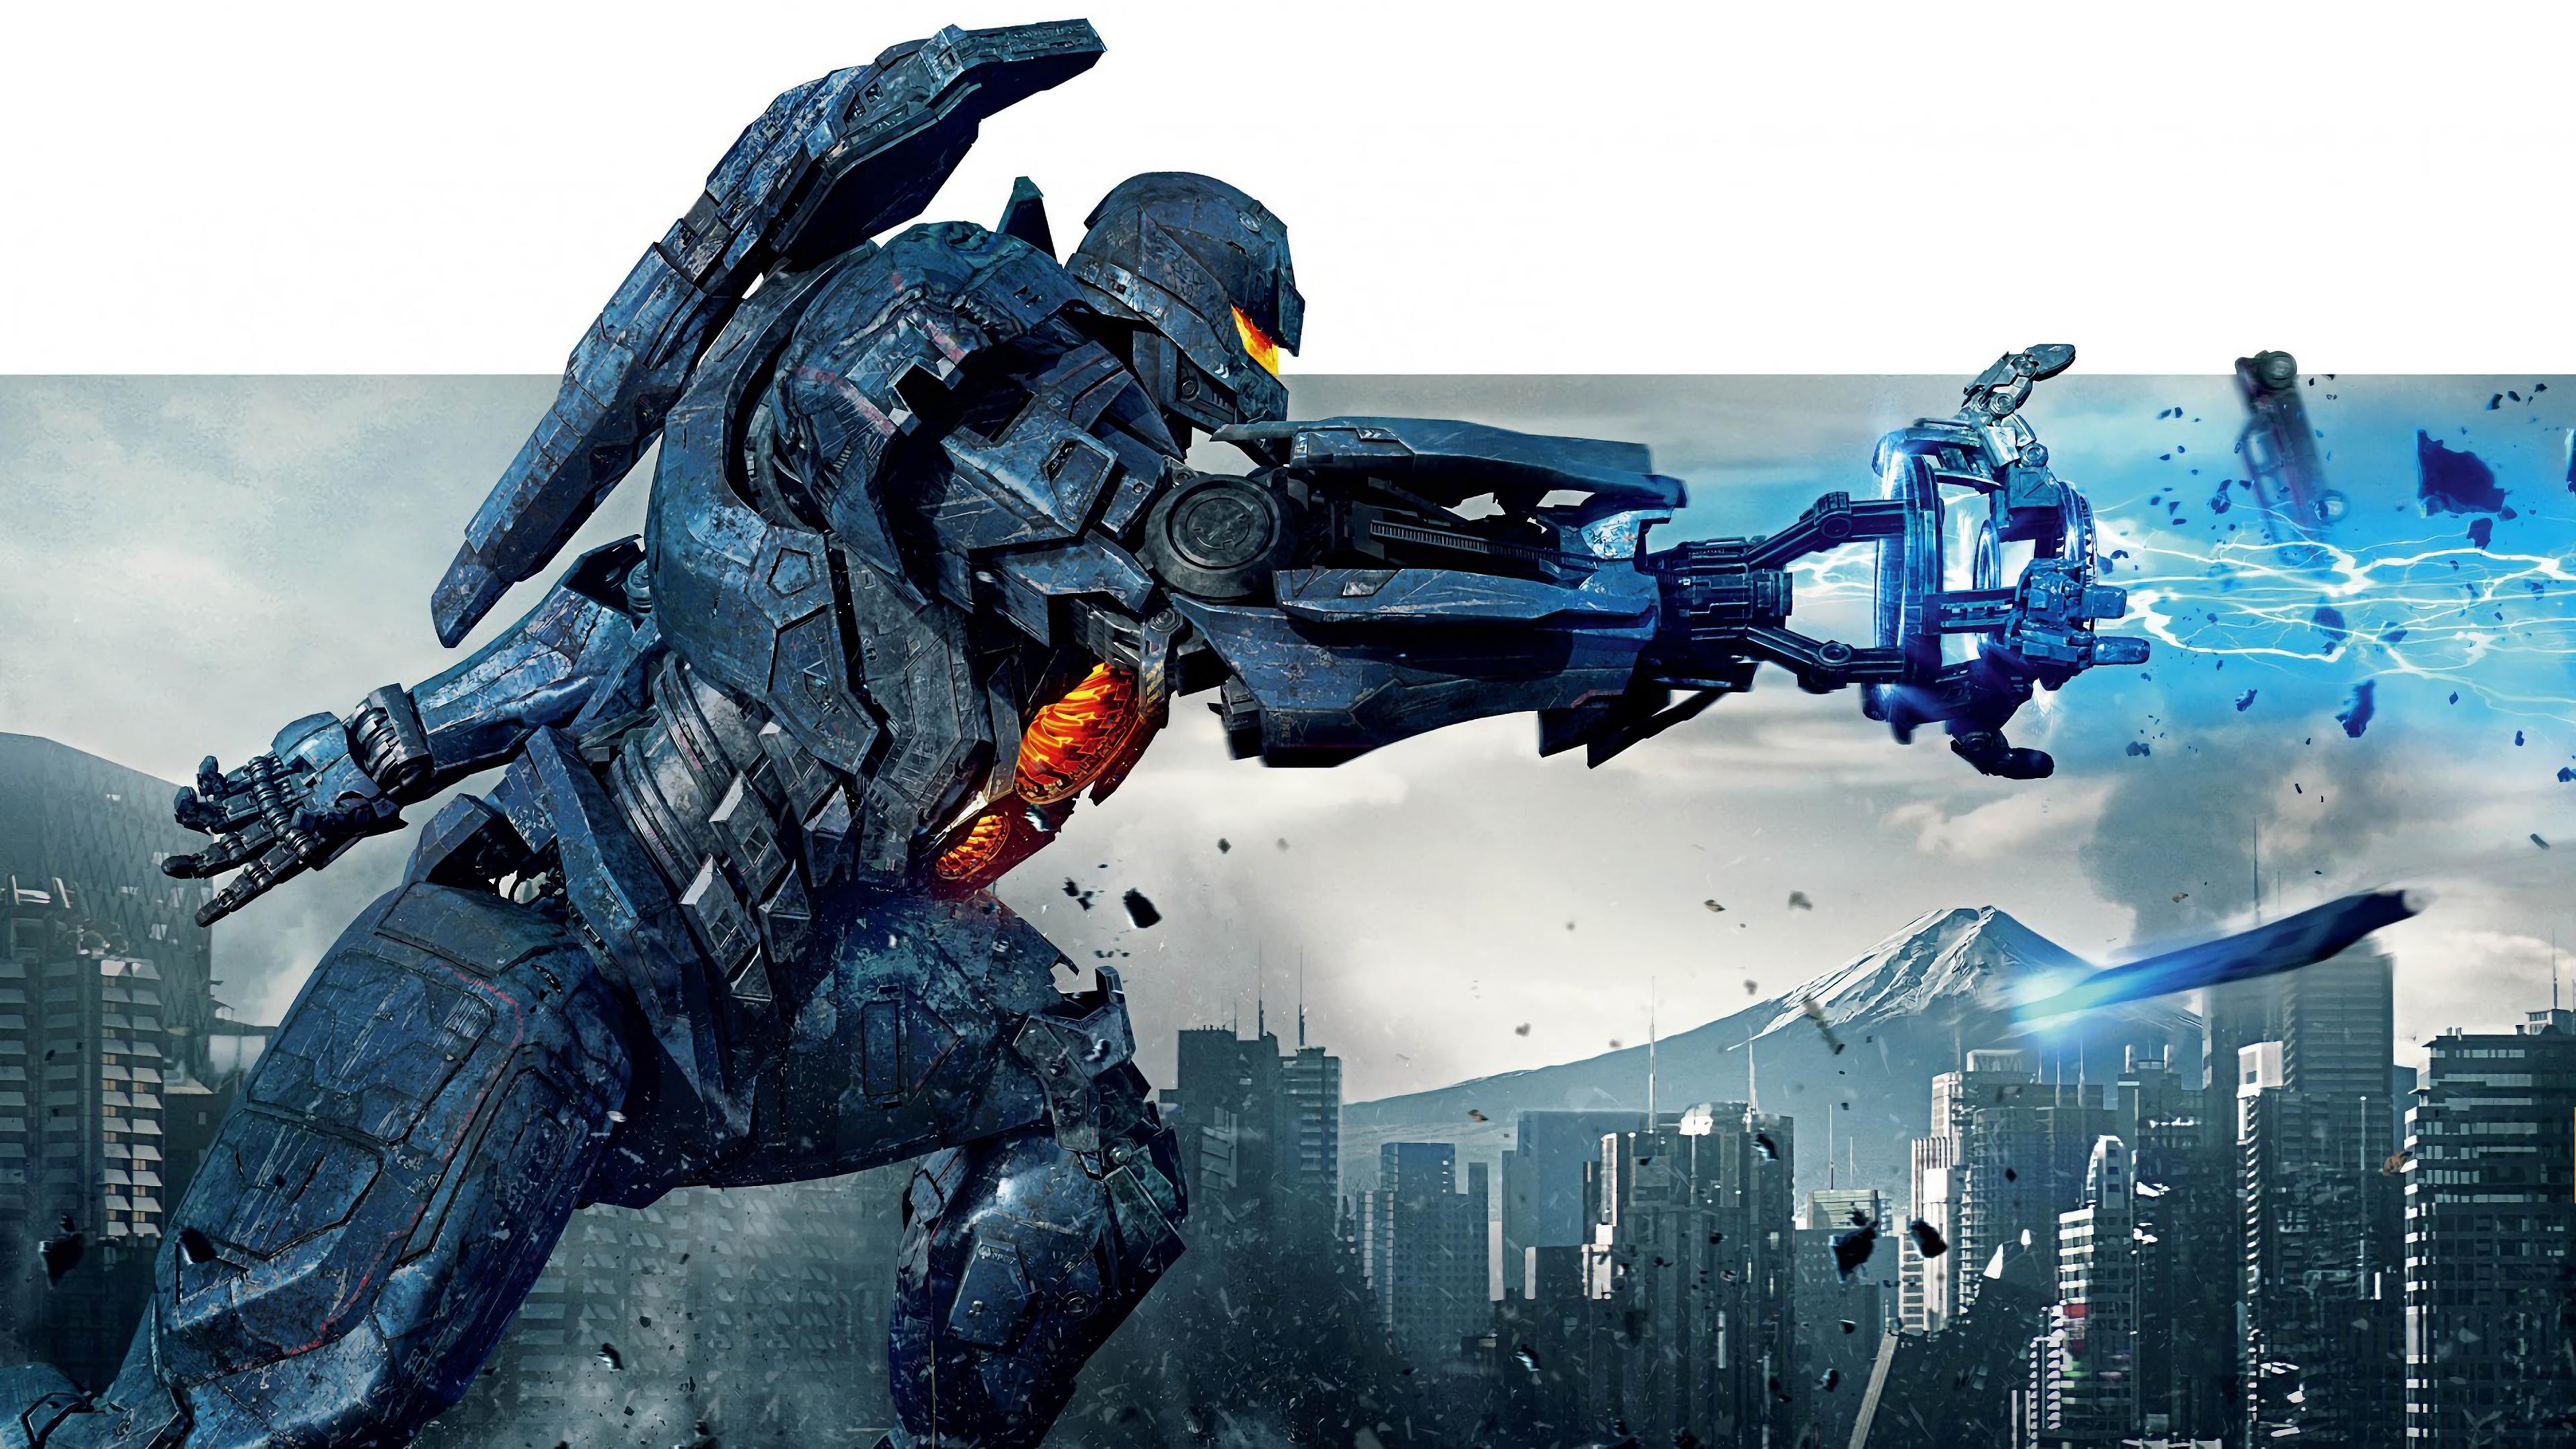 Gipsy Avenger 4K 8K HD Pacific Rim Wallpaper 3840x2160